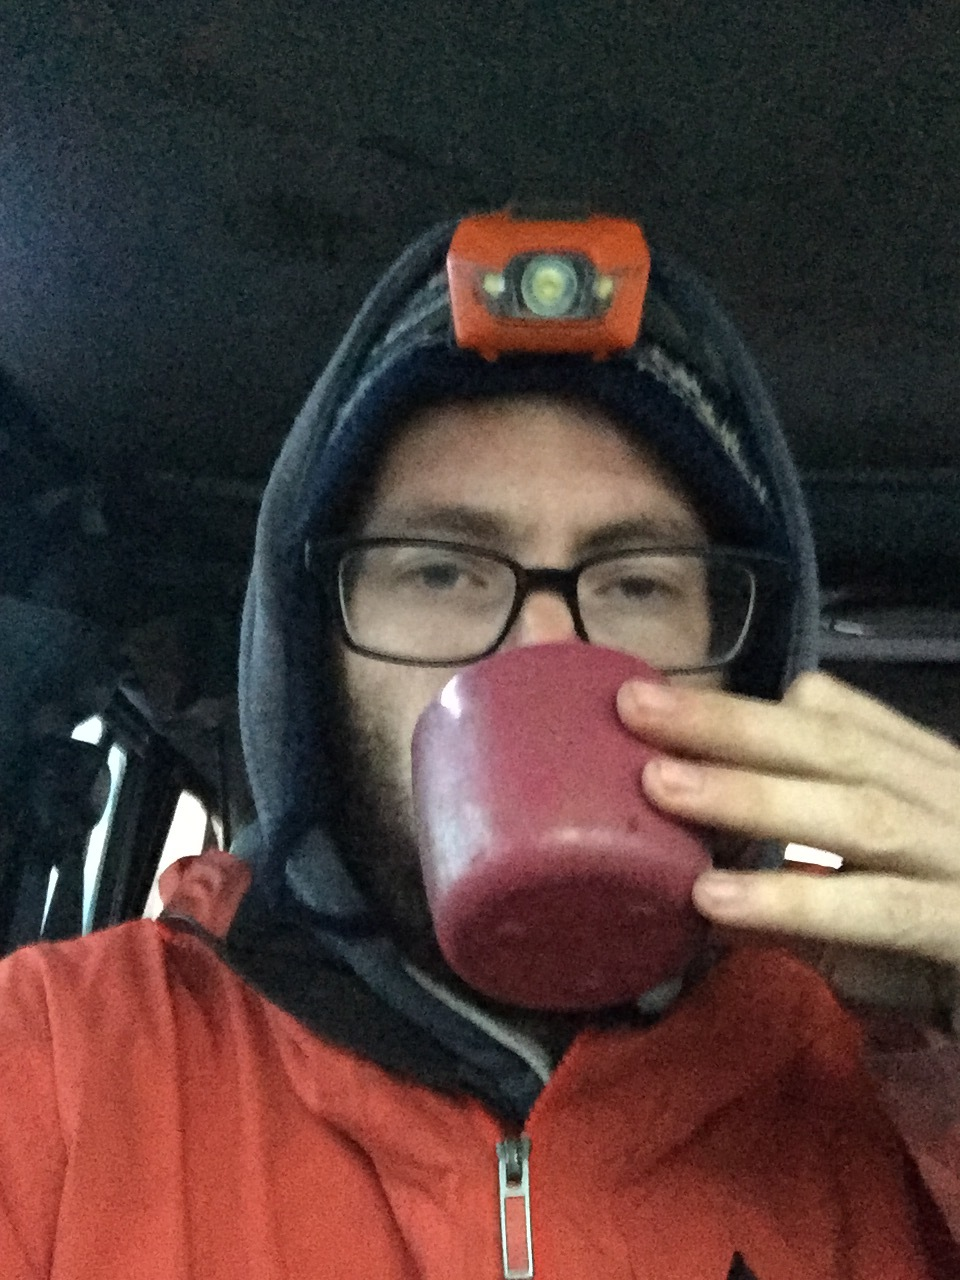 Waking up at 5000 metres altitude in Ecuador's highest volcano. I might have managed to sleep a few hours. A lack of oxygen and of warmth led to a very short night. I am sipping some cheap instant coffee, trying to manage the Jeep descent on snowy twisting roads.